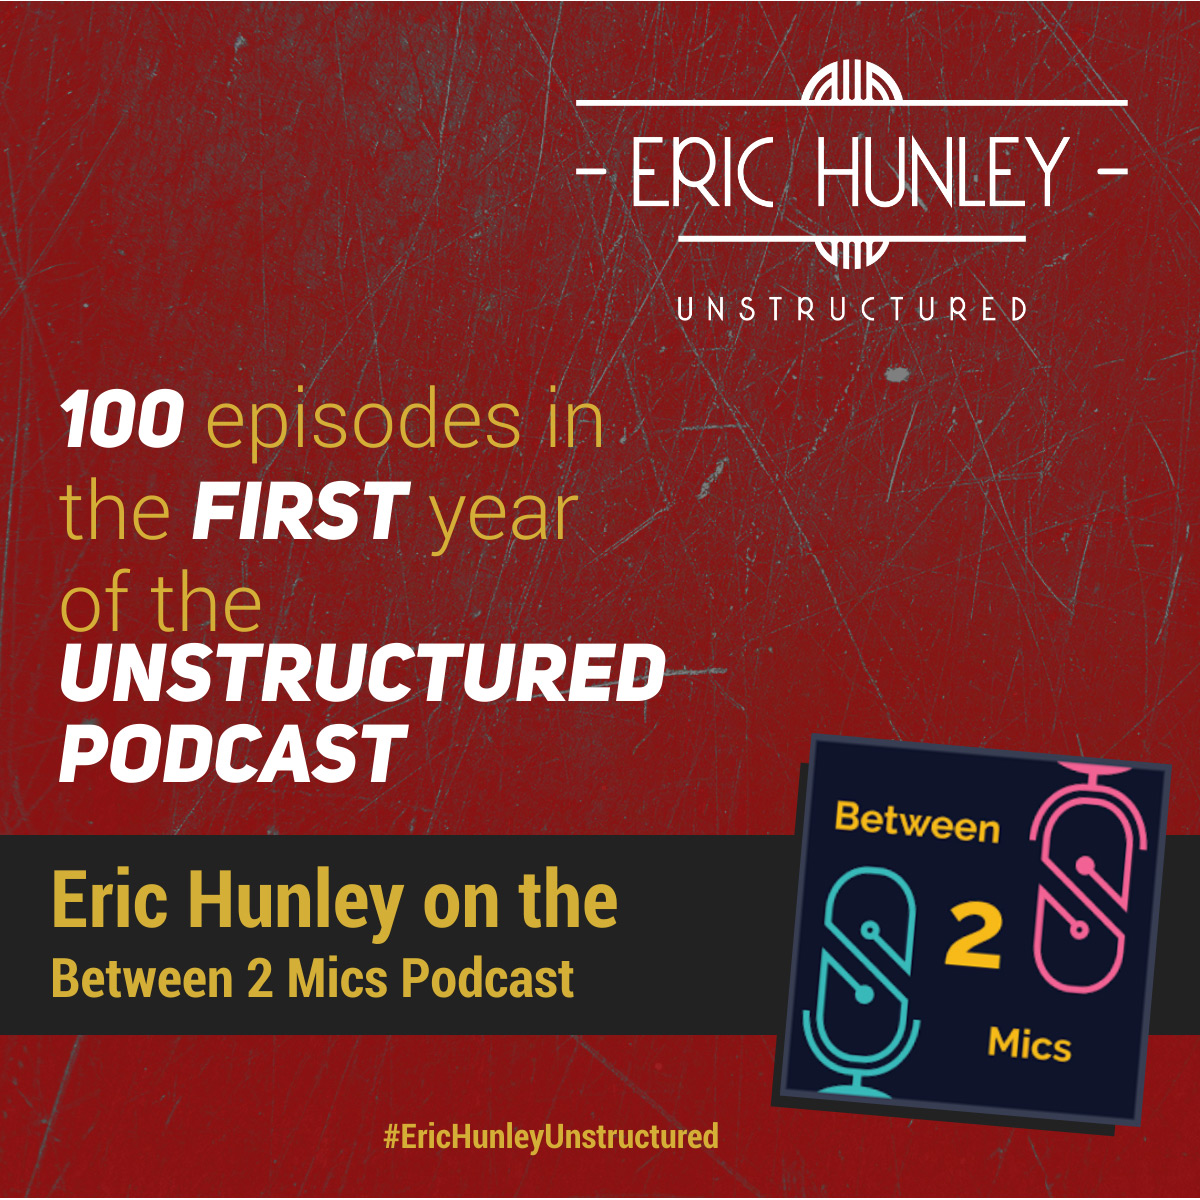 Eric Hunley Podcast Appearance Interviews - Between 2 Mics Podcast Podcast Square Post